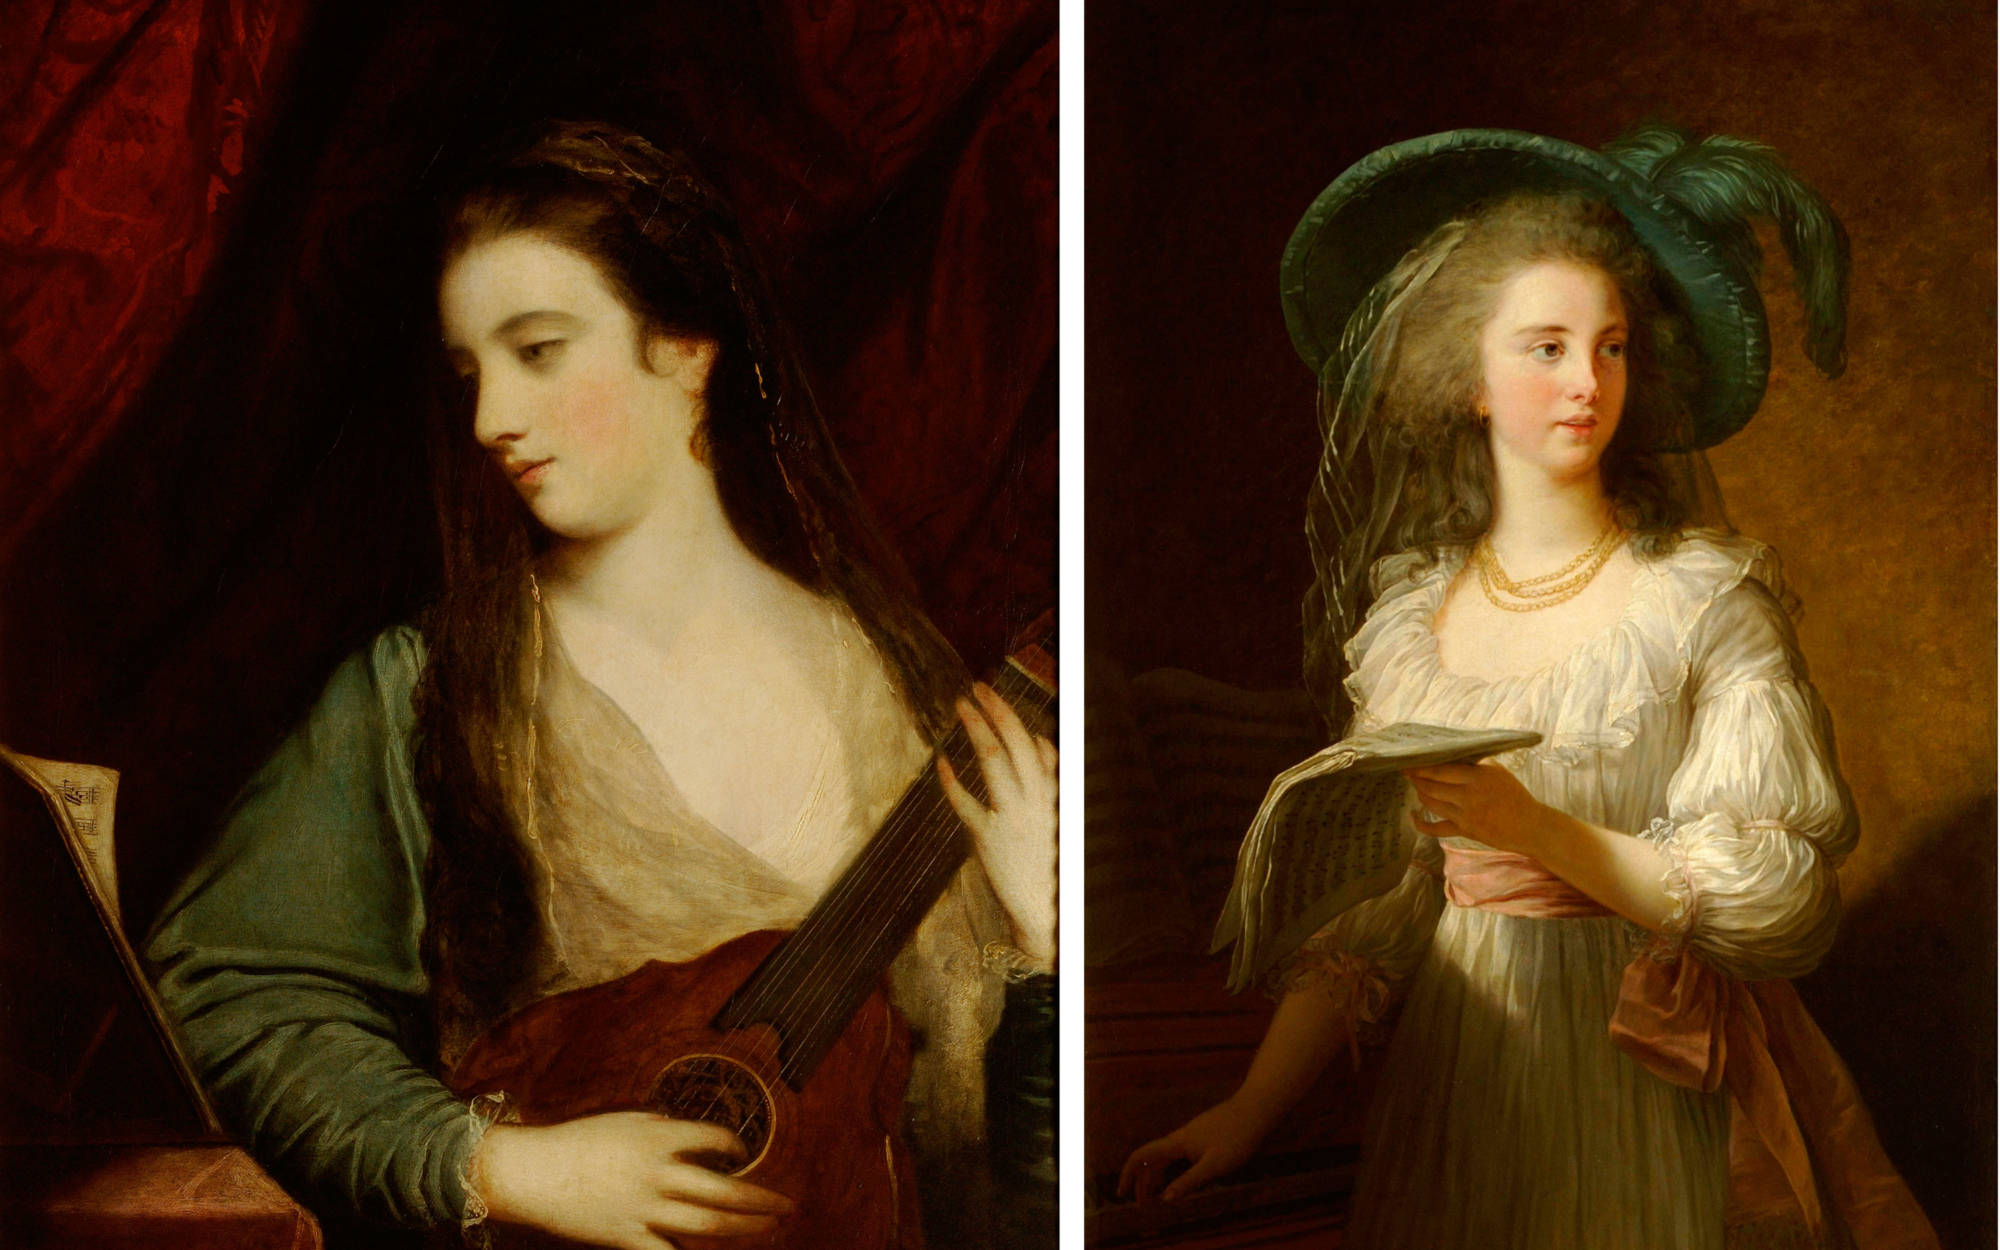 Captured in a musical moment, Reynolds's Miss Fordyce (1762-1763) (on the left) makes an interesting comparison with Elizabeth Vigée-Lebrun's, Duchesse de Polignac (1783).